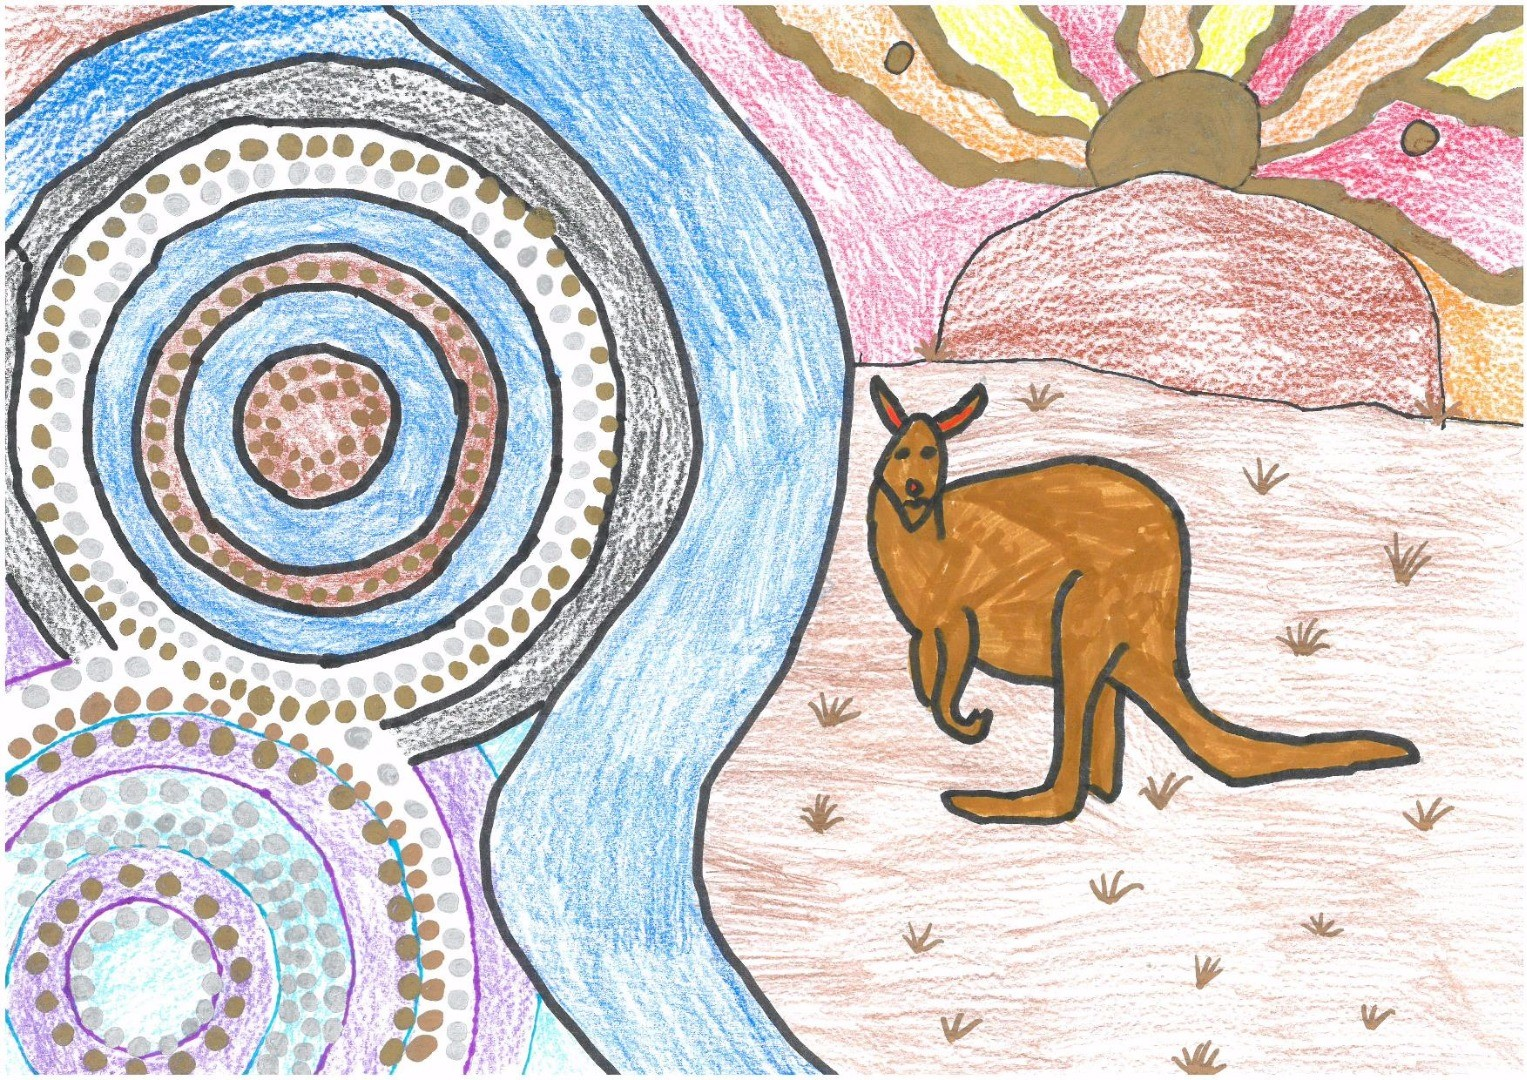 2017 Celebrate Australia Primary School Art Competition Third Place Section Two: My Home Australia by Cadence Ware